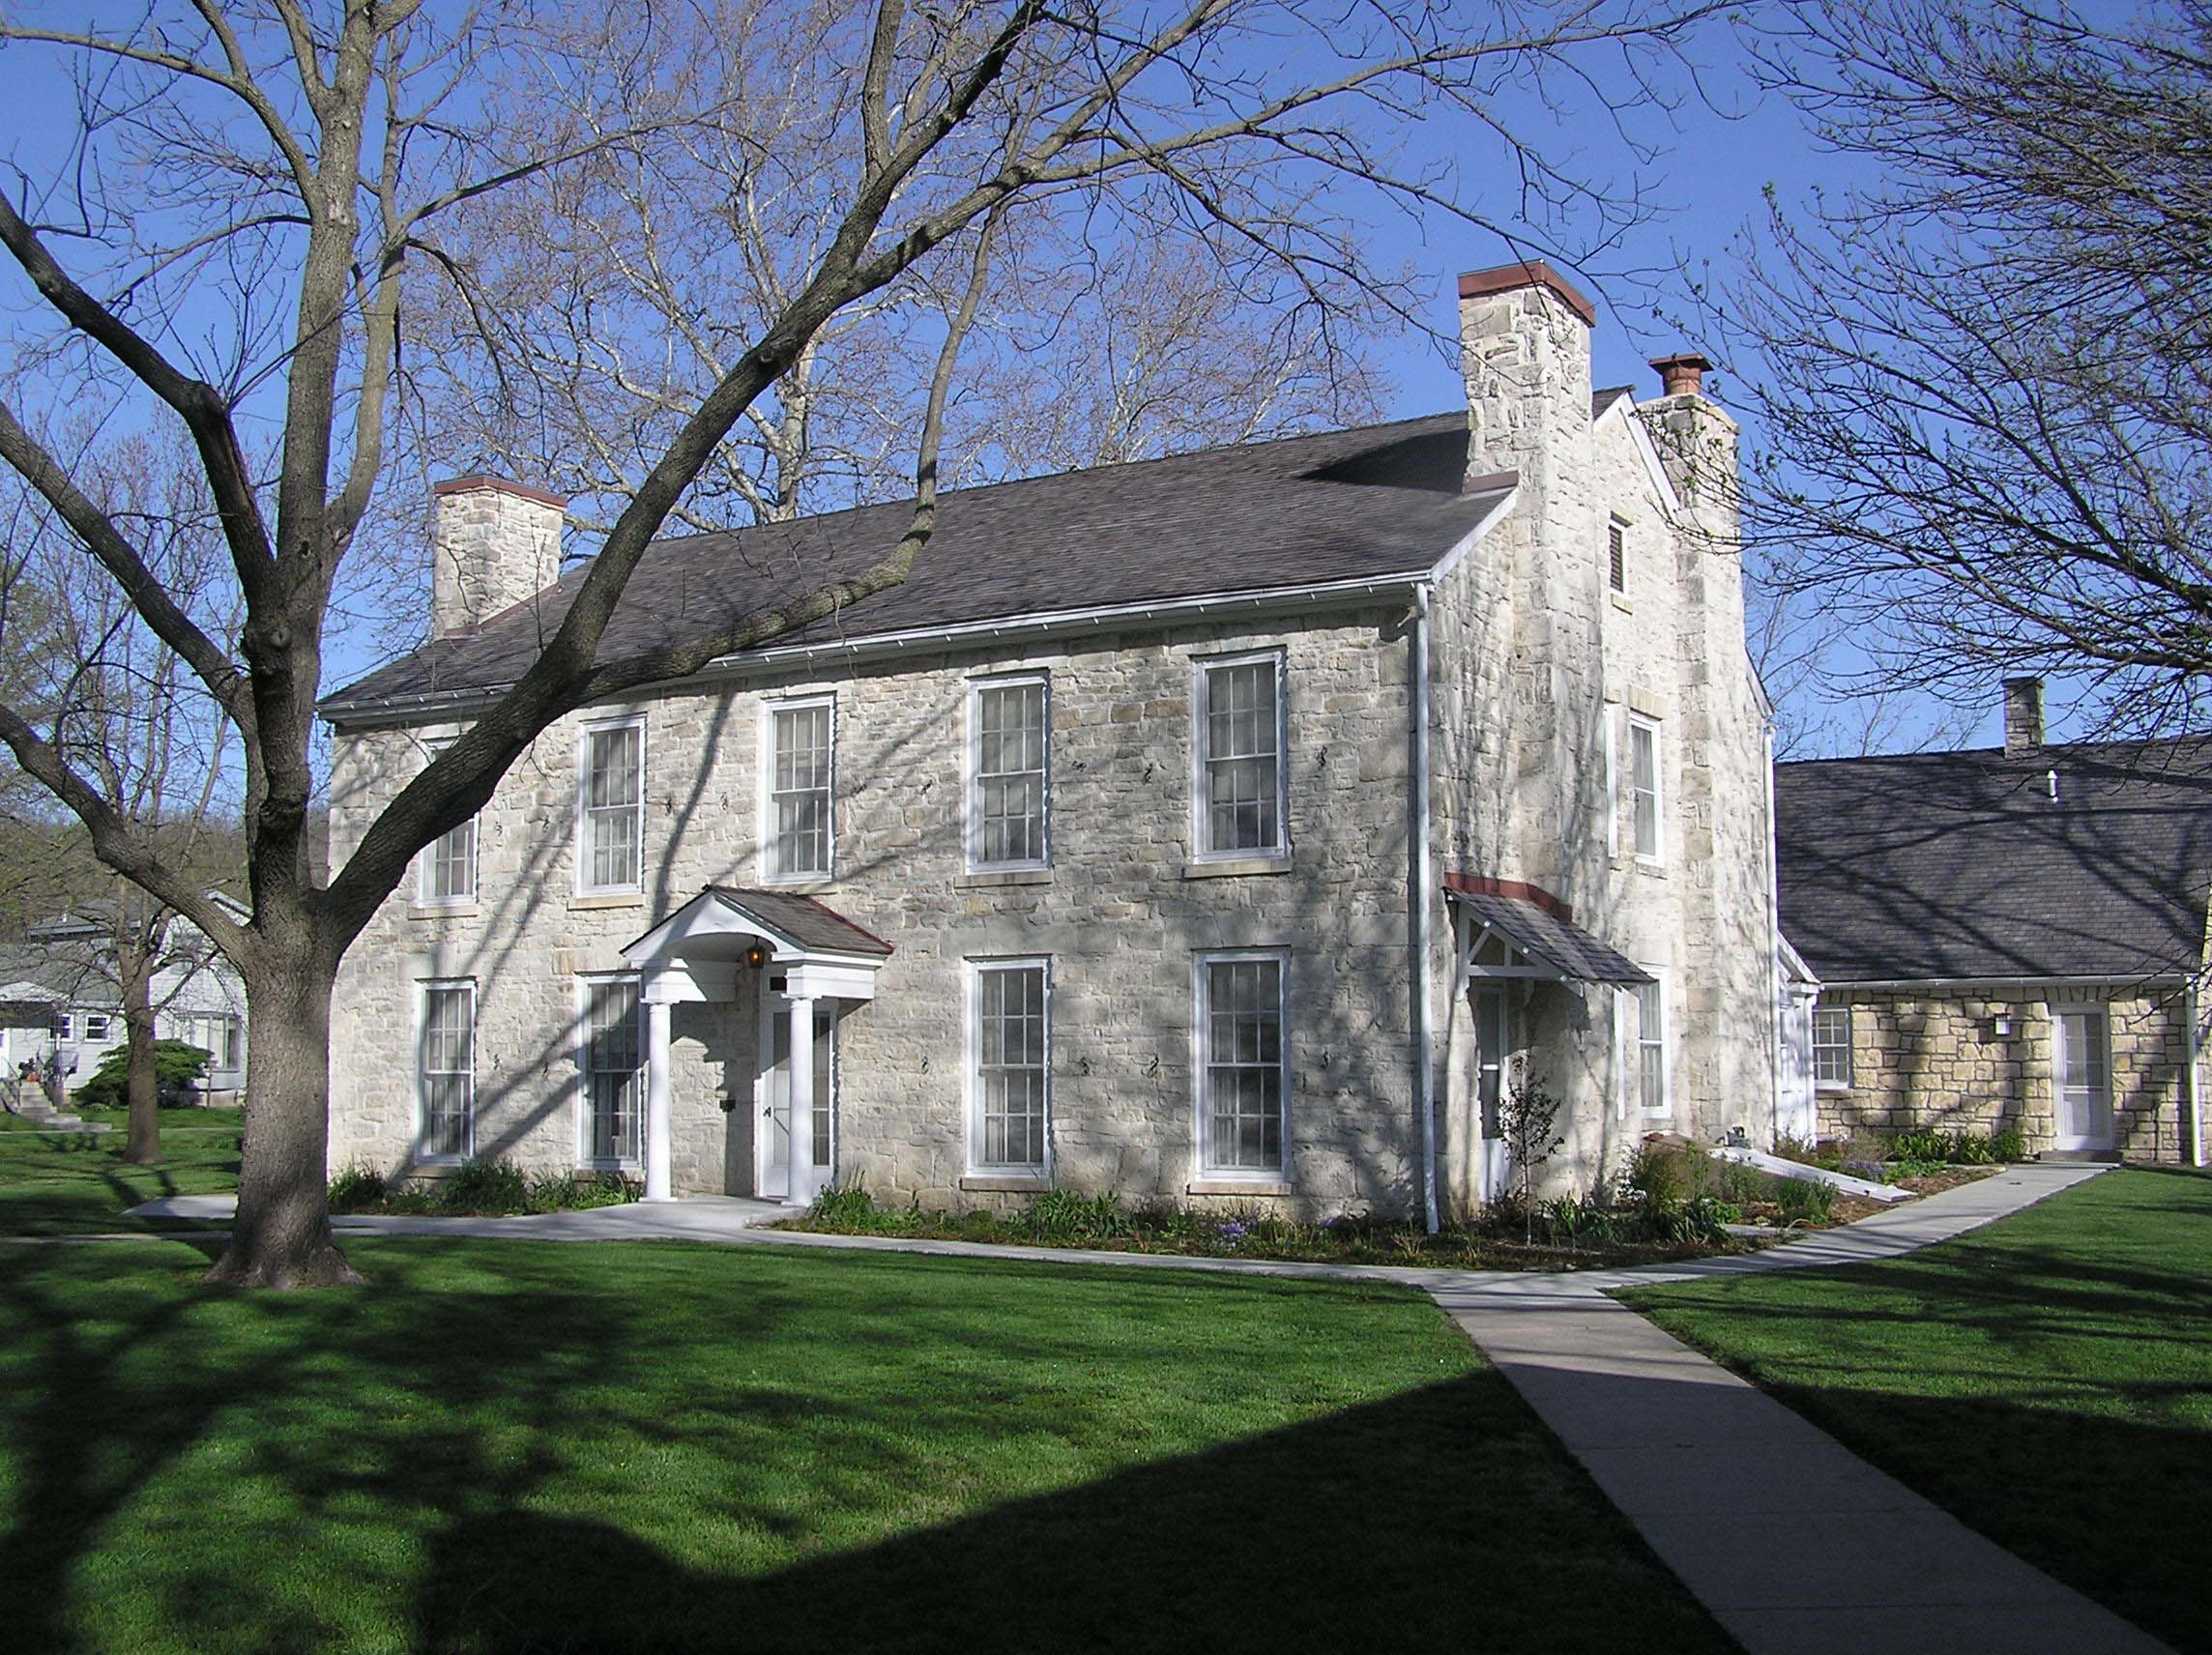 Kaw Indian Mission Council Grove